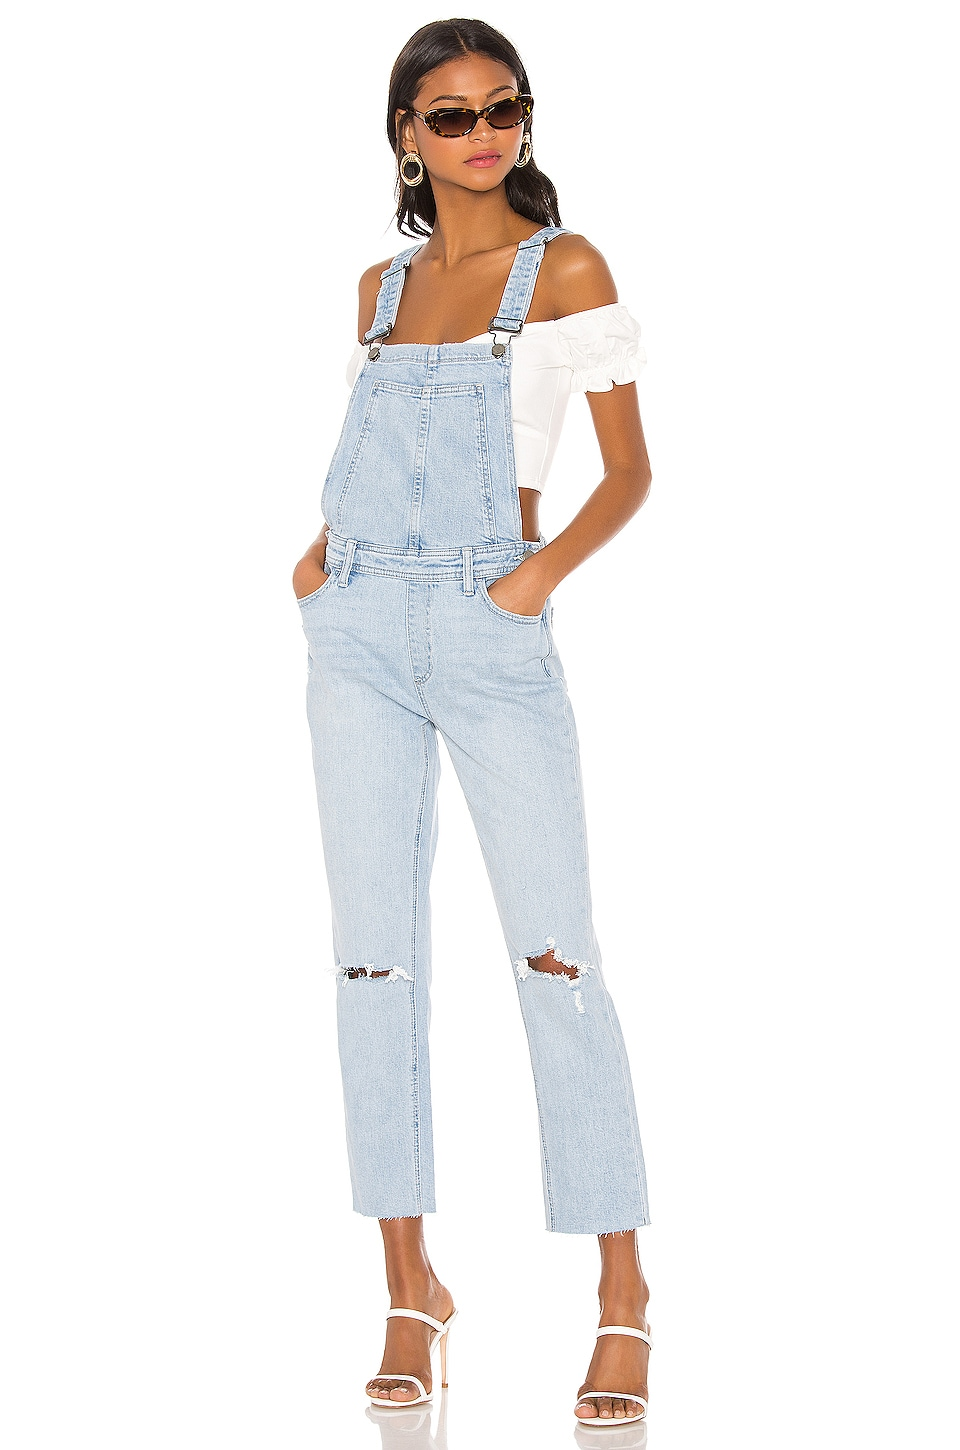 PAIGE High Rise Sierra Overall in Lindon Destructed